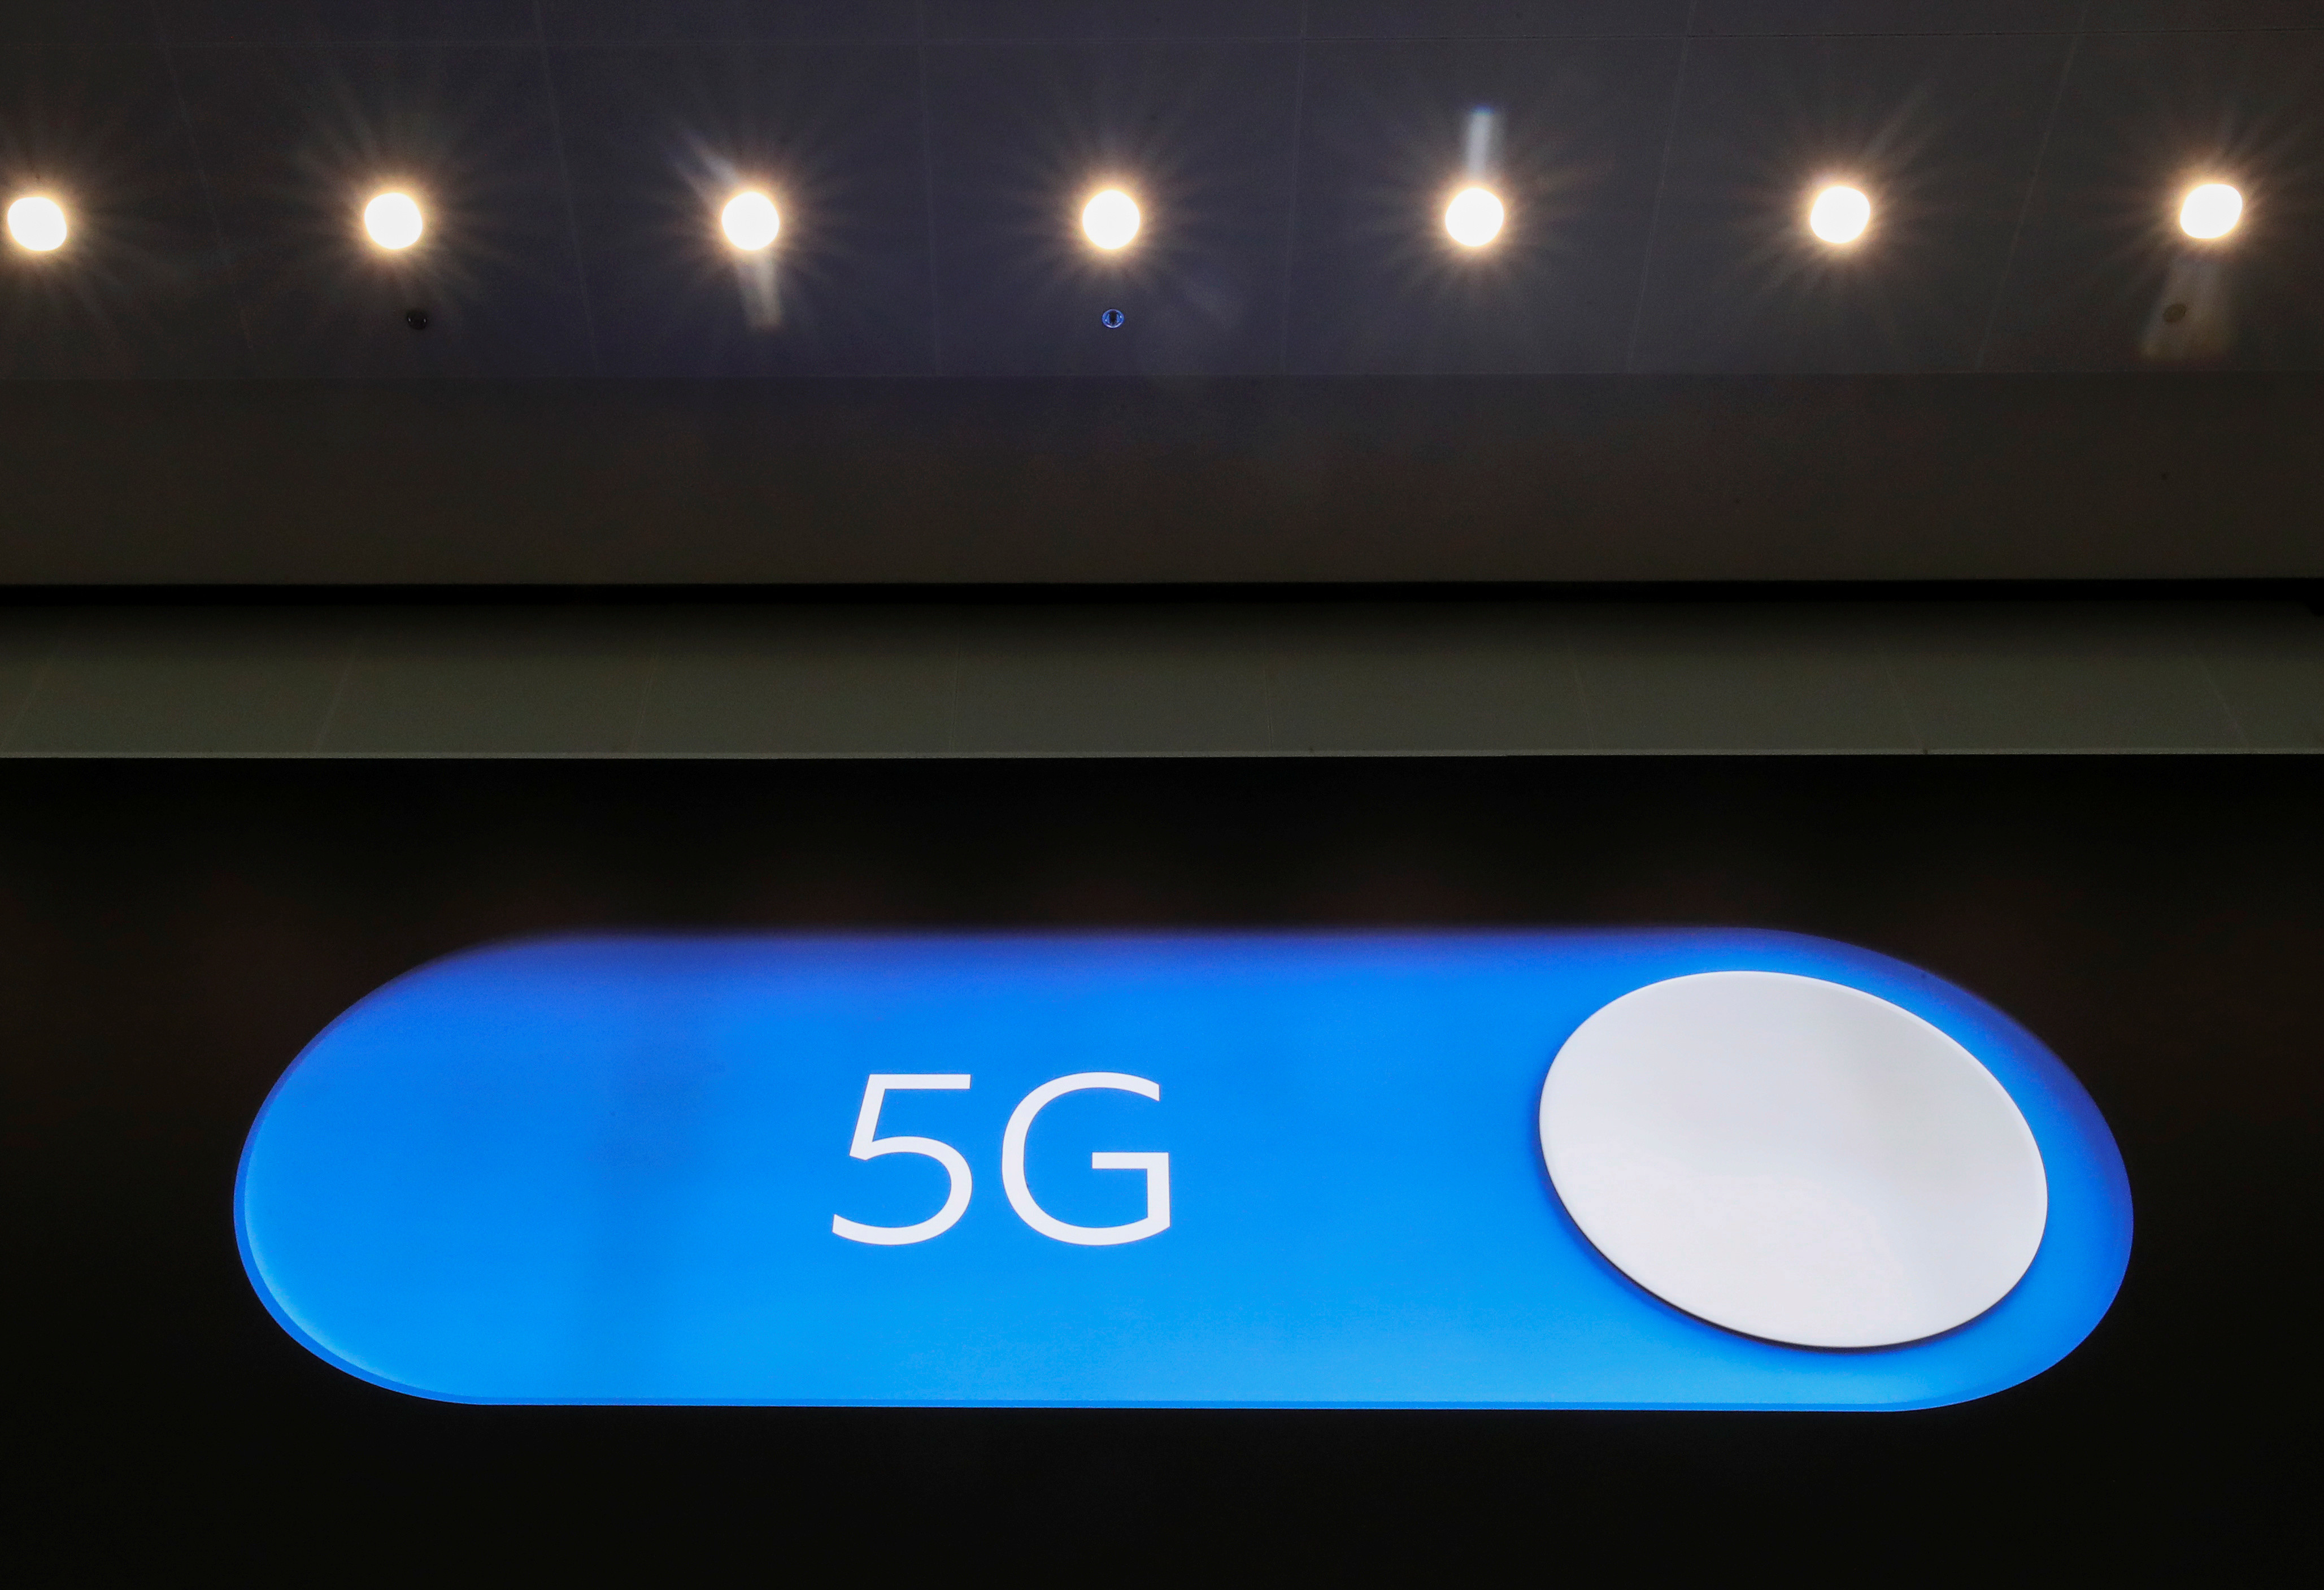 An advertising board shows a 5G logo at the International Airport in Zaventem, Belgium May 4, 2020. Picture taken May 4, 2020. REUTERS/Yves Herman - RC2EIG9PMBRJ